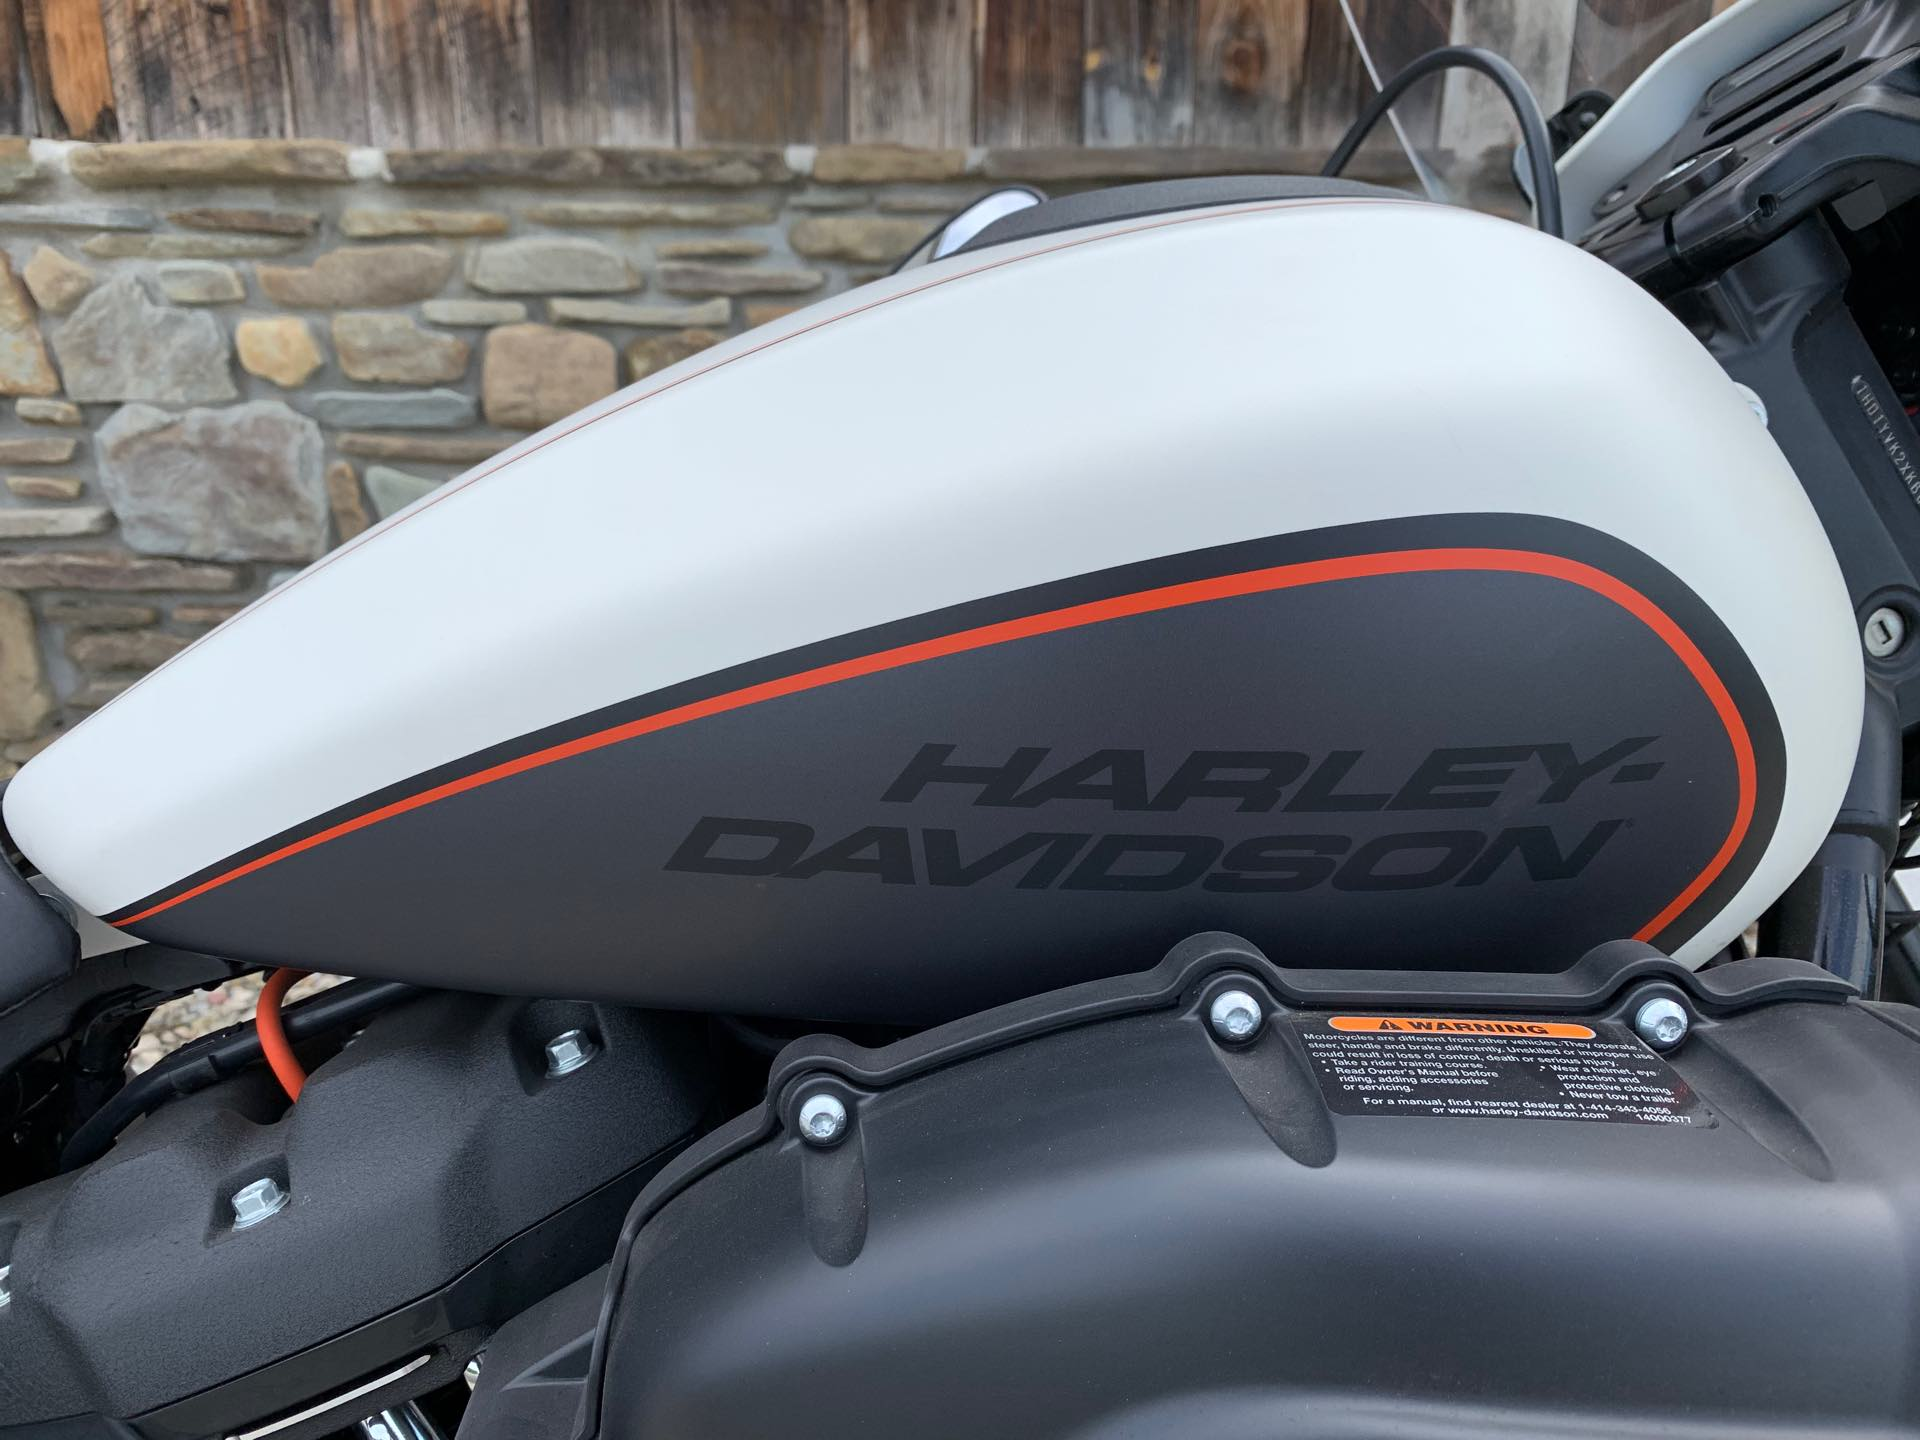 2019 Harley-Davidson Softail FXDR 114 at Arkport Cycles